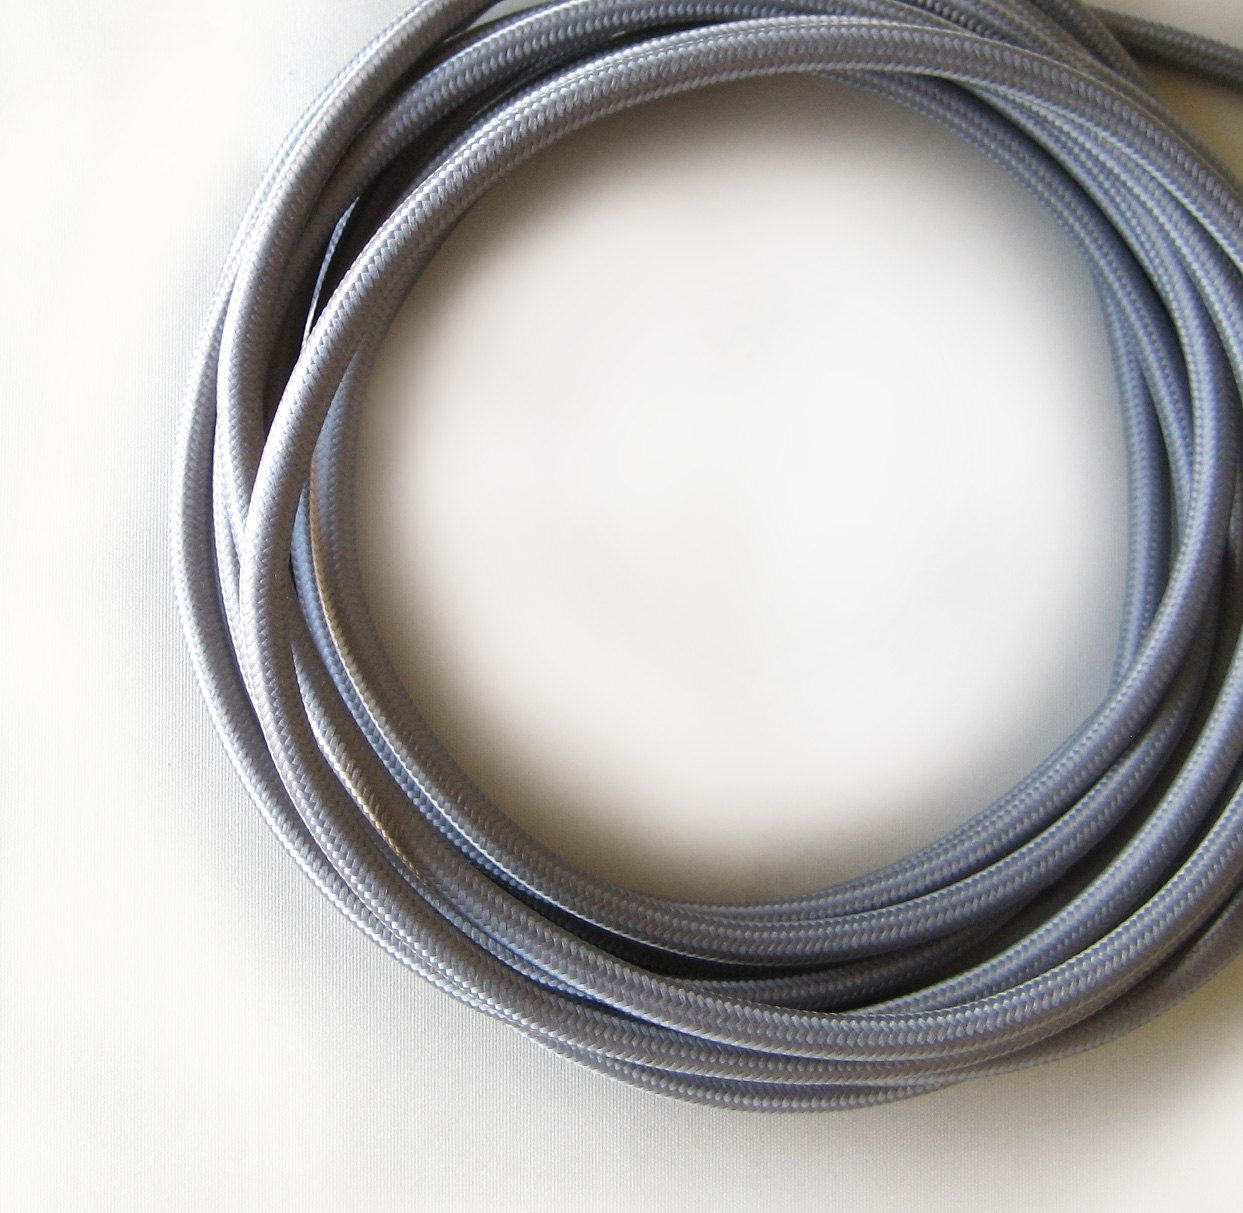 Wire by METER Grey / Gray Fabric Cloth Covered Wire Electrical Cord ...